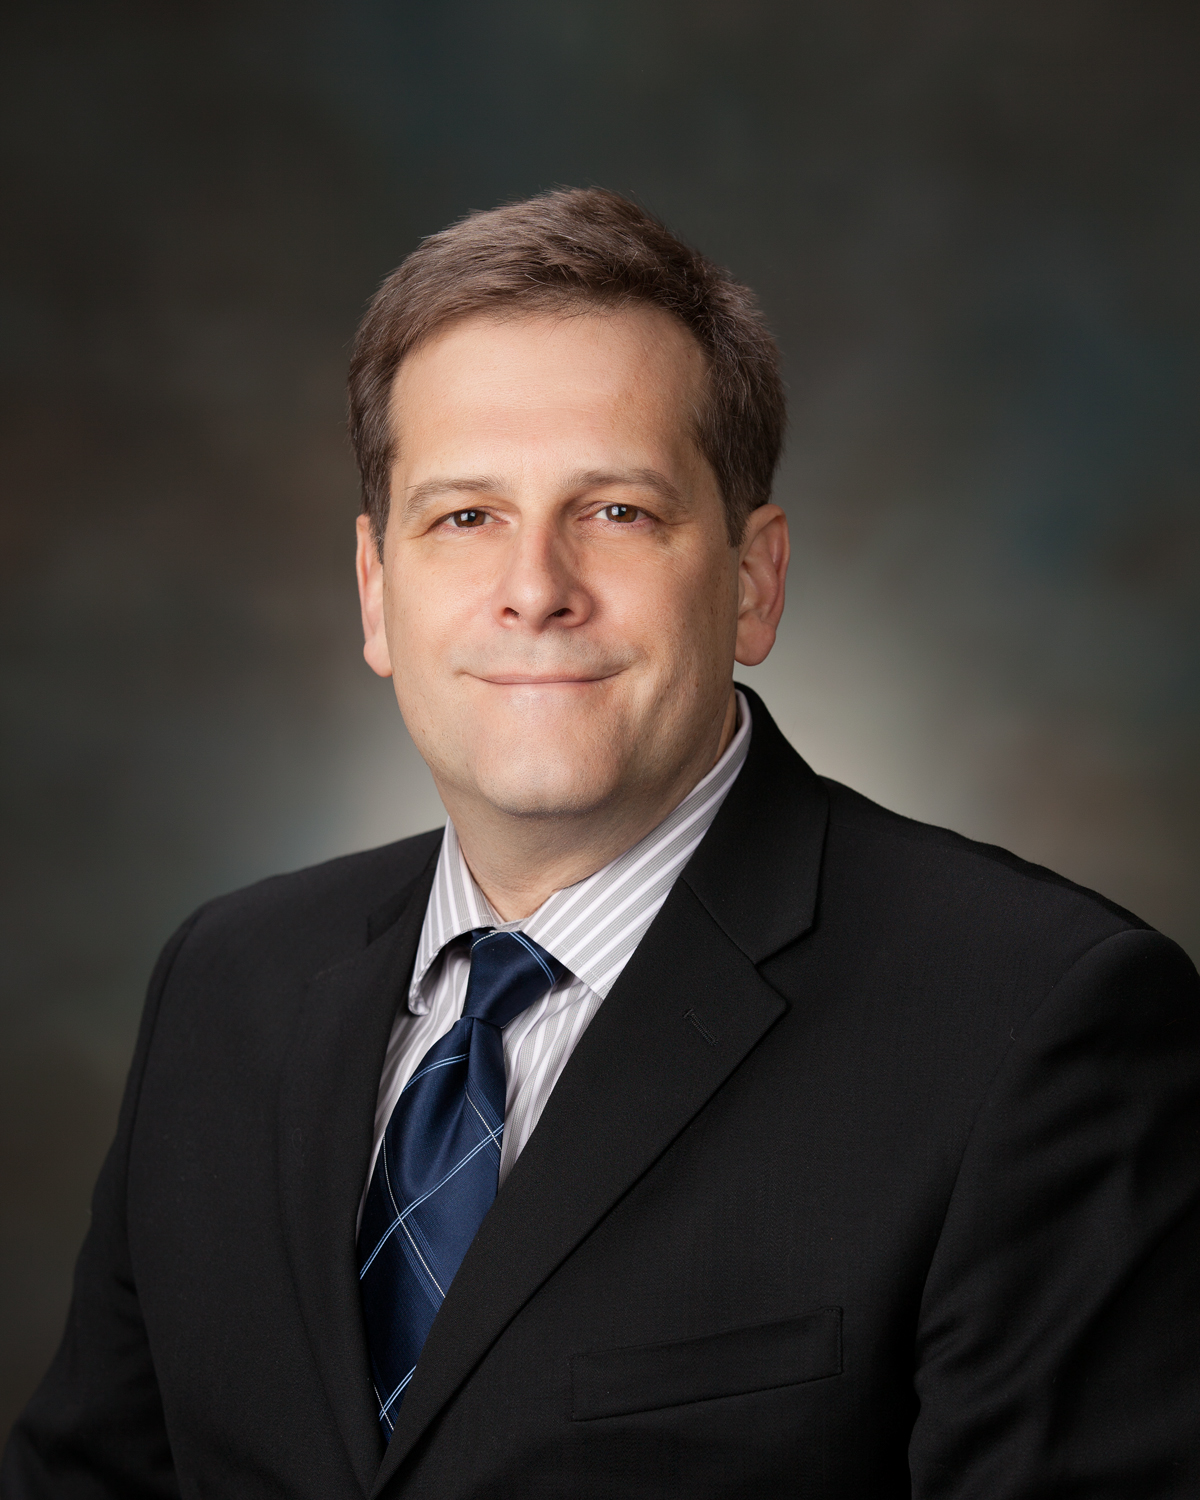 ROSE LANE IS PLEASED TO WELCOME GREGORY C. KLOEHN, M.D., F.A.C.C. AS PROGRAM DIRECTOR OF CARDIAC CARE AND CLINICAL OUTCOMES